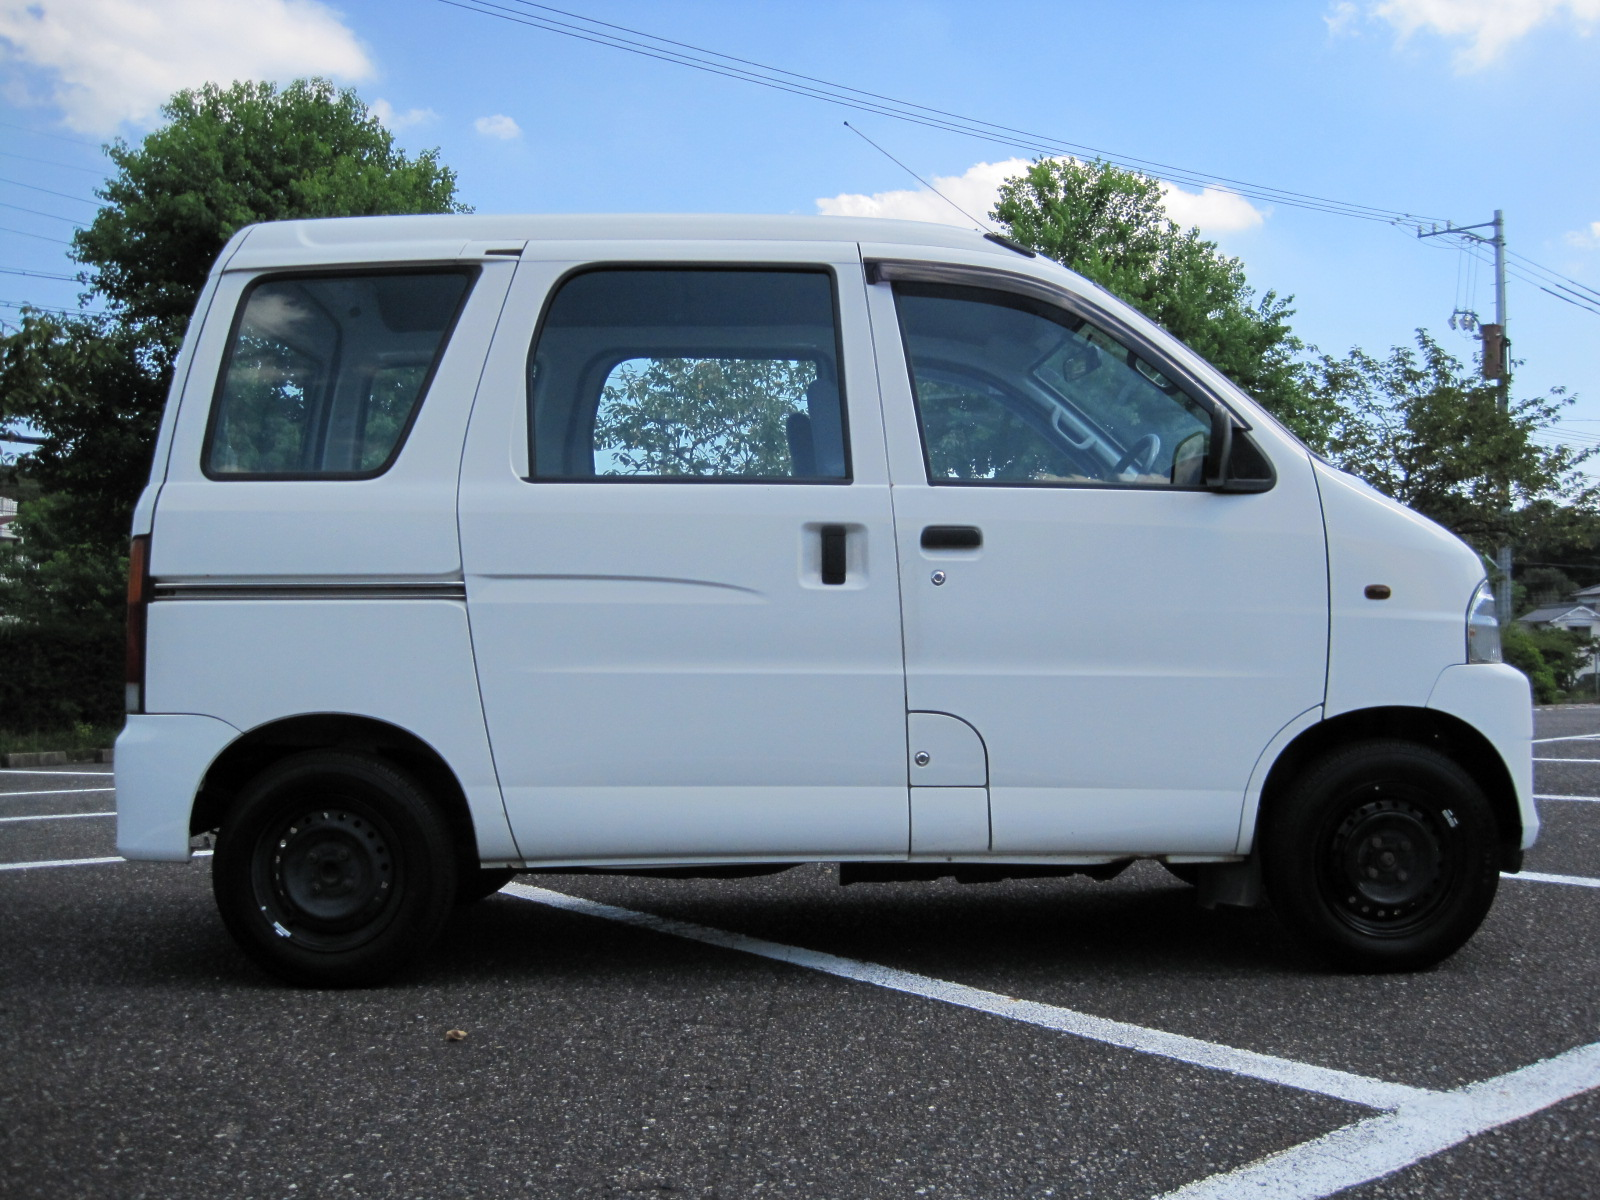 Used Vans For Sale Near Me >> cargo | JPN CAR NAME +FOR+SALE+JAPAN,tel fax +81 561 42 ...